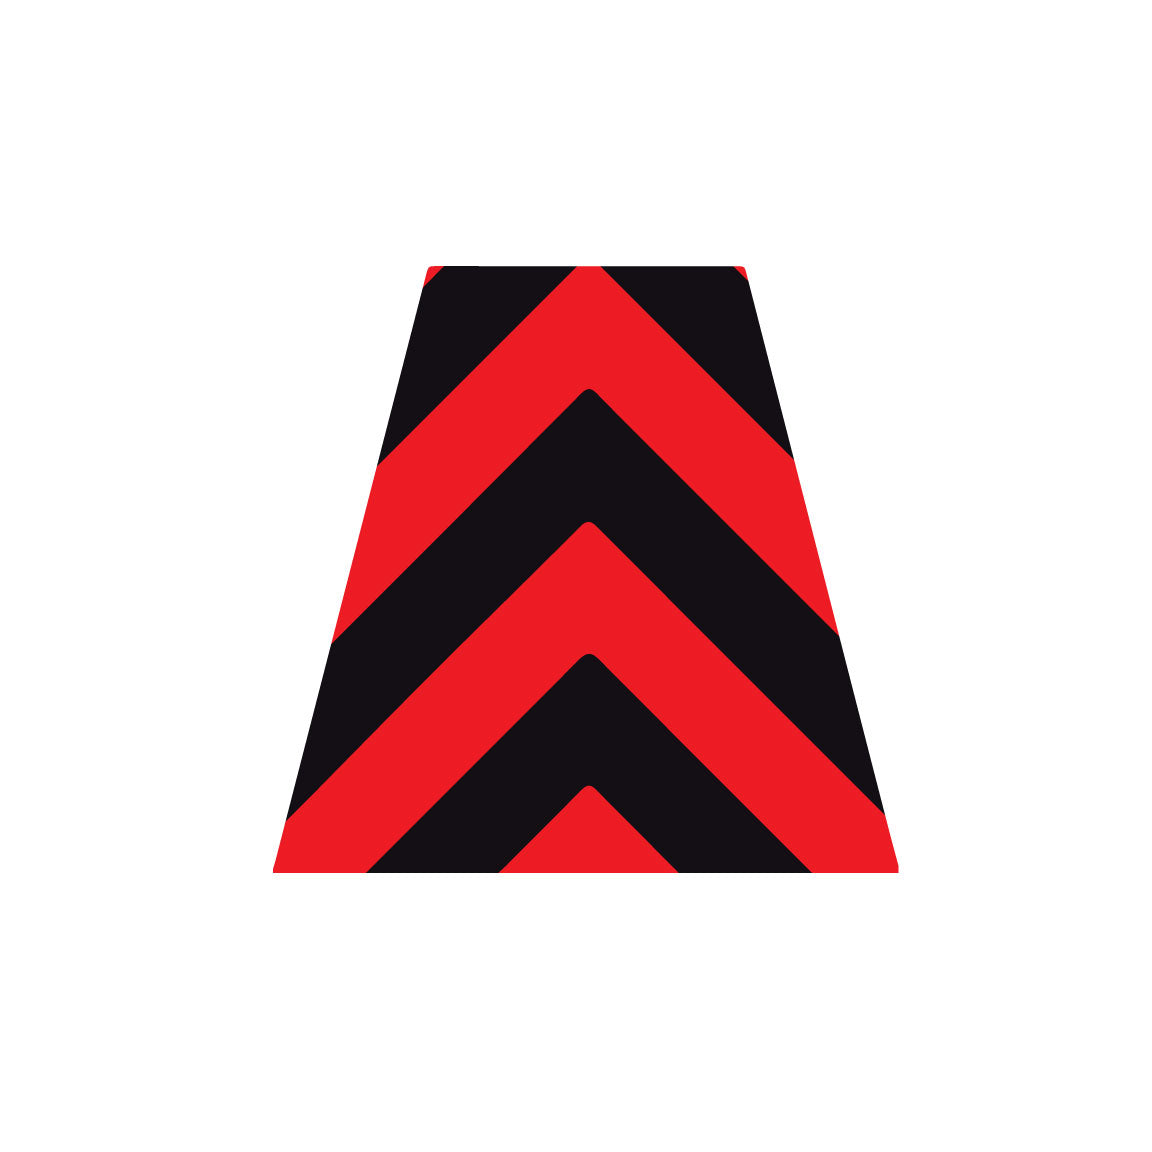 Black And Red >> Black Red Chevron Reflective Helmet Tetrahedron Tets Police Fire